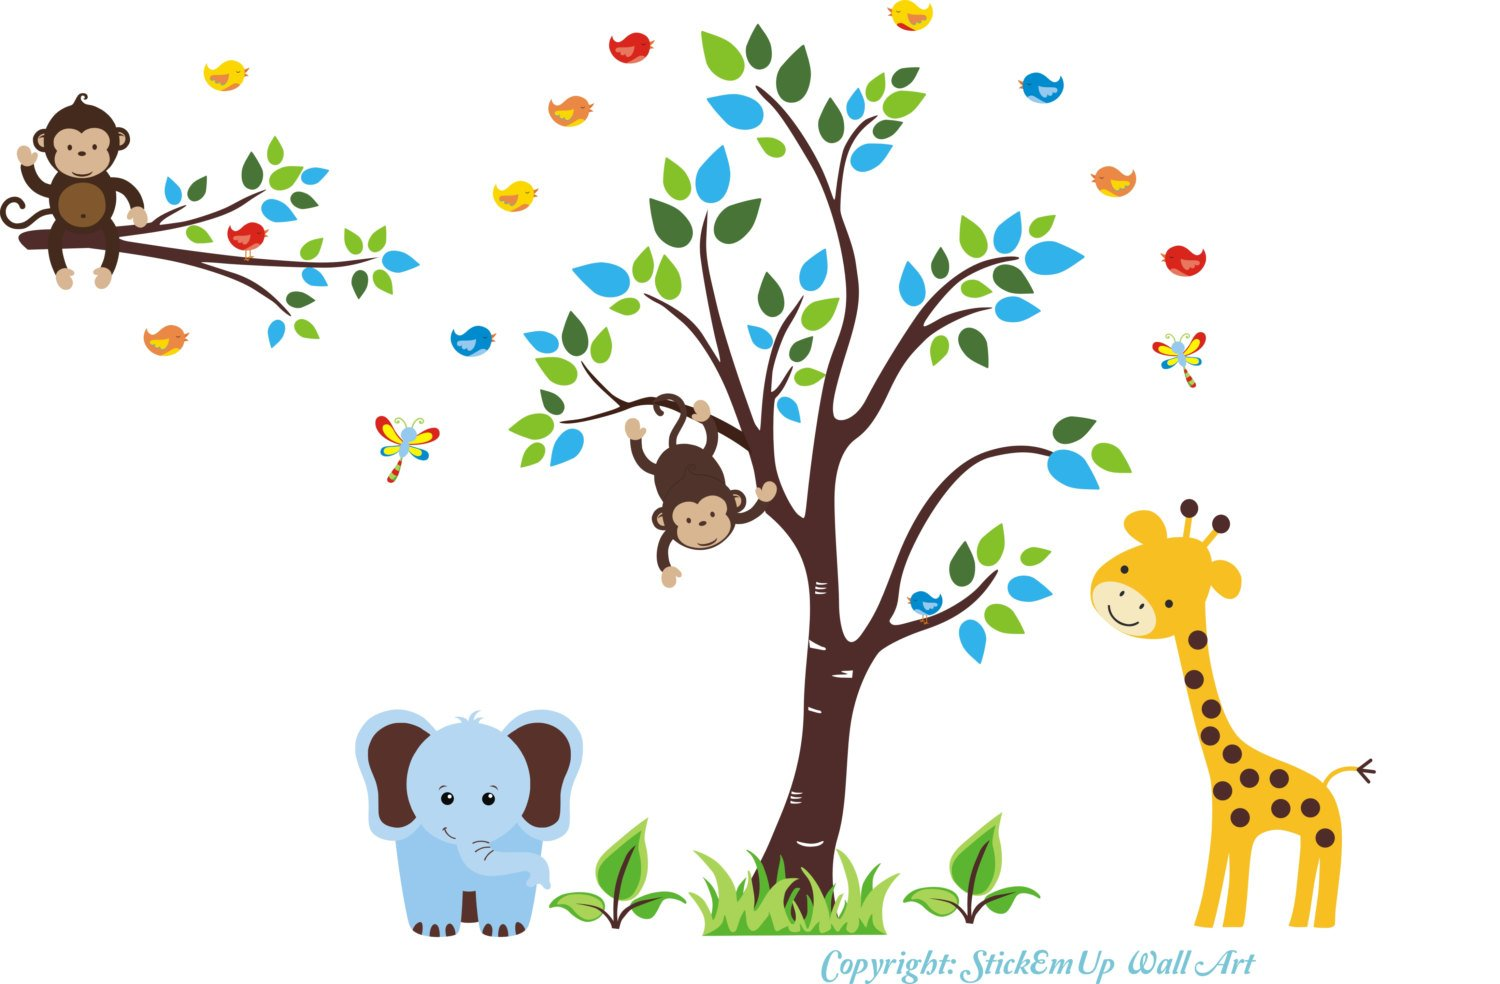 Baby Nursery Wall Decals Safari Jungle Children's Themed 100'' X 117'' (Inches) Animals Wildlife: Repositionable Removable Reusable Wall Art: Better than vinyl wall decals: Superior Material